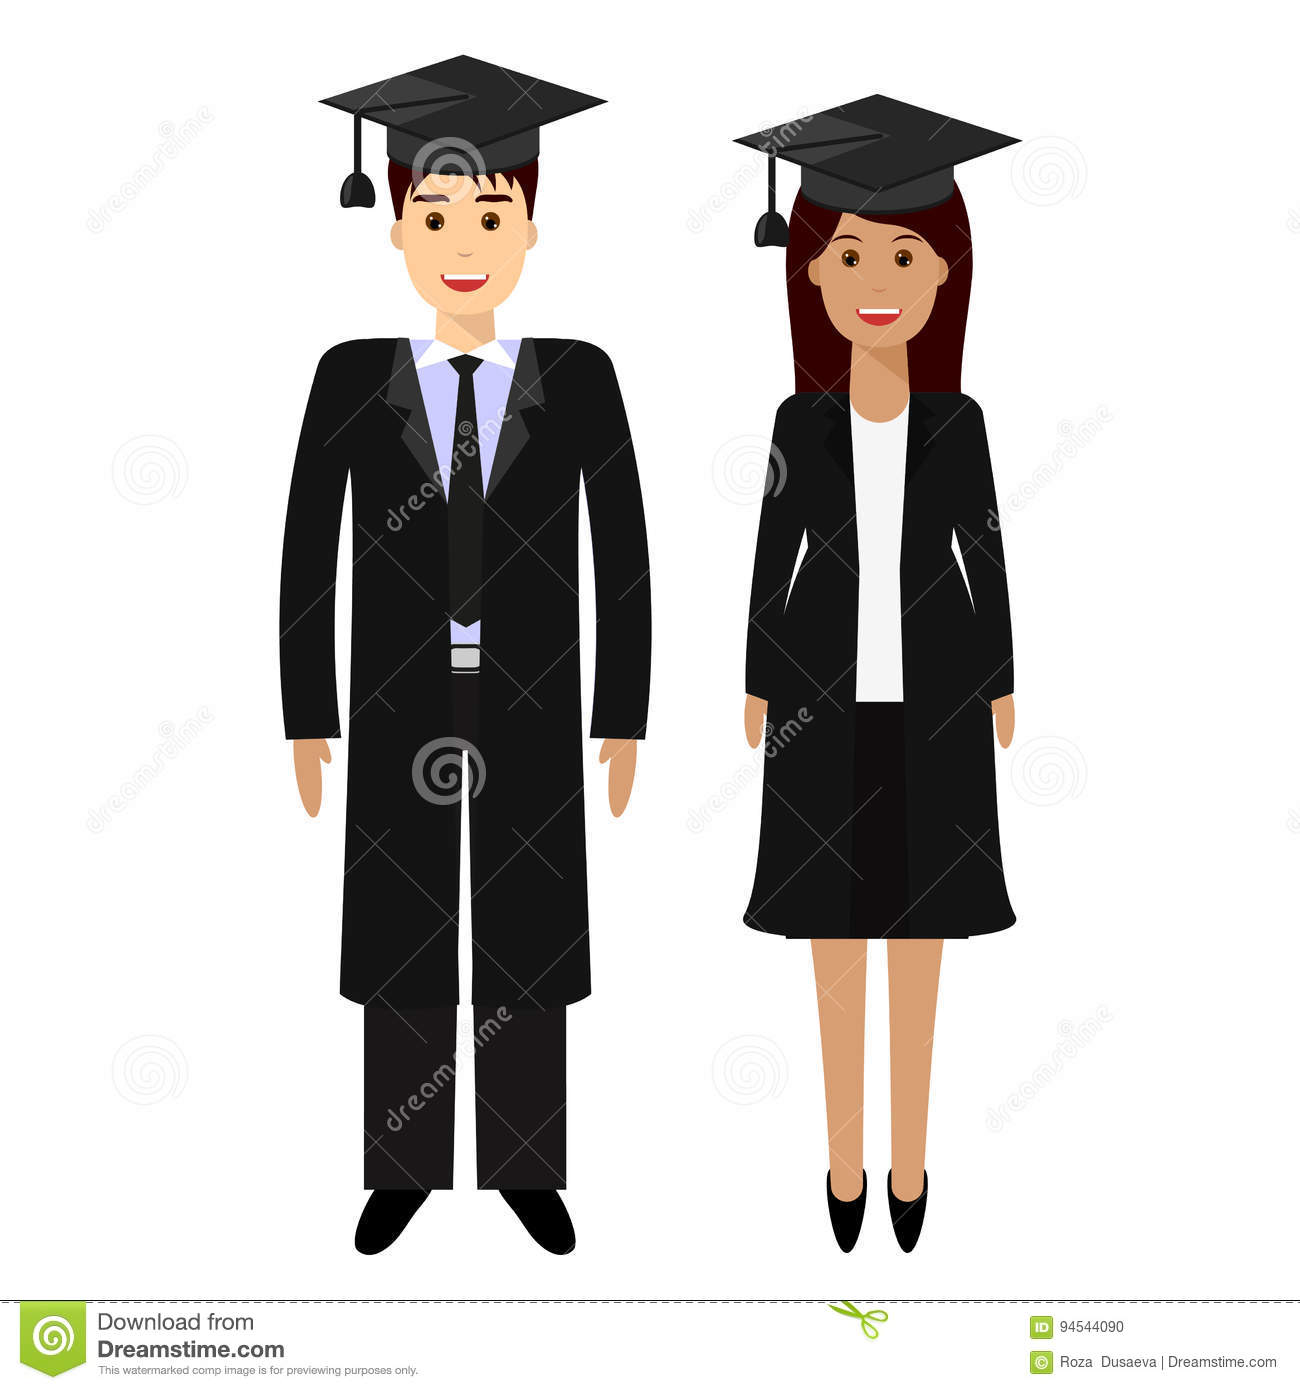 Graduation Cap And Gown Cartoon